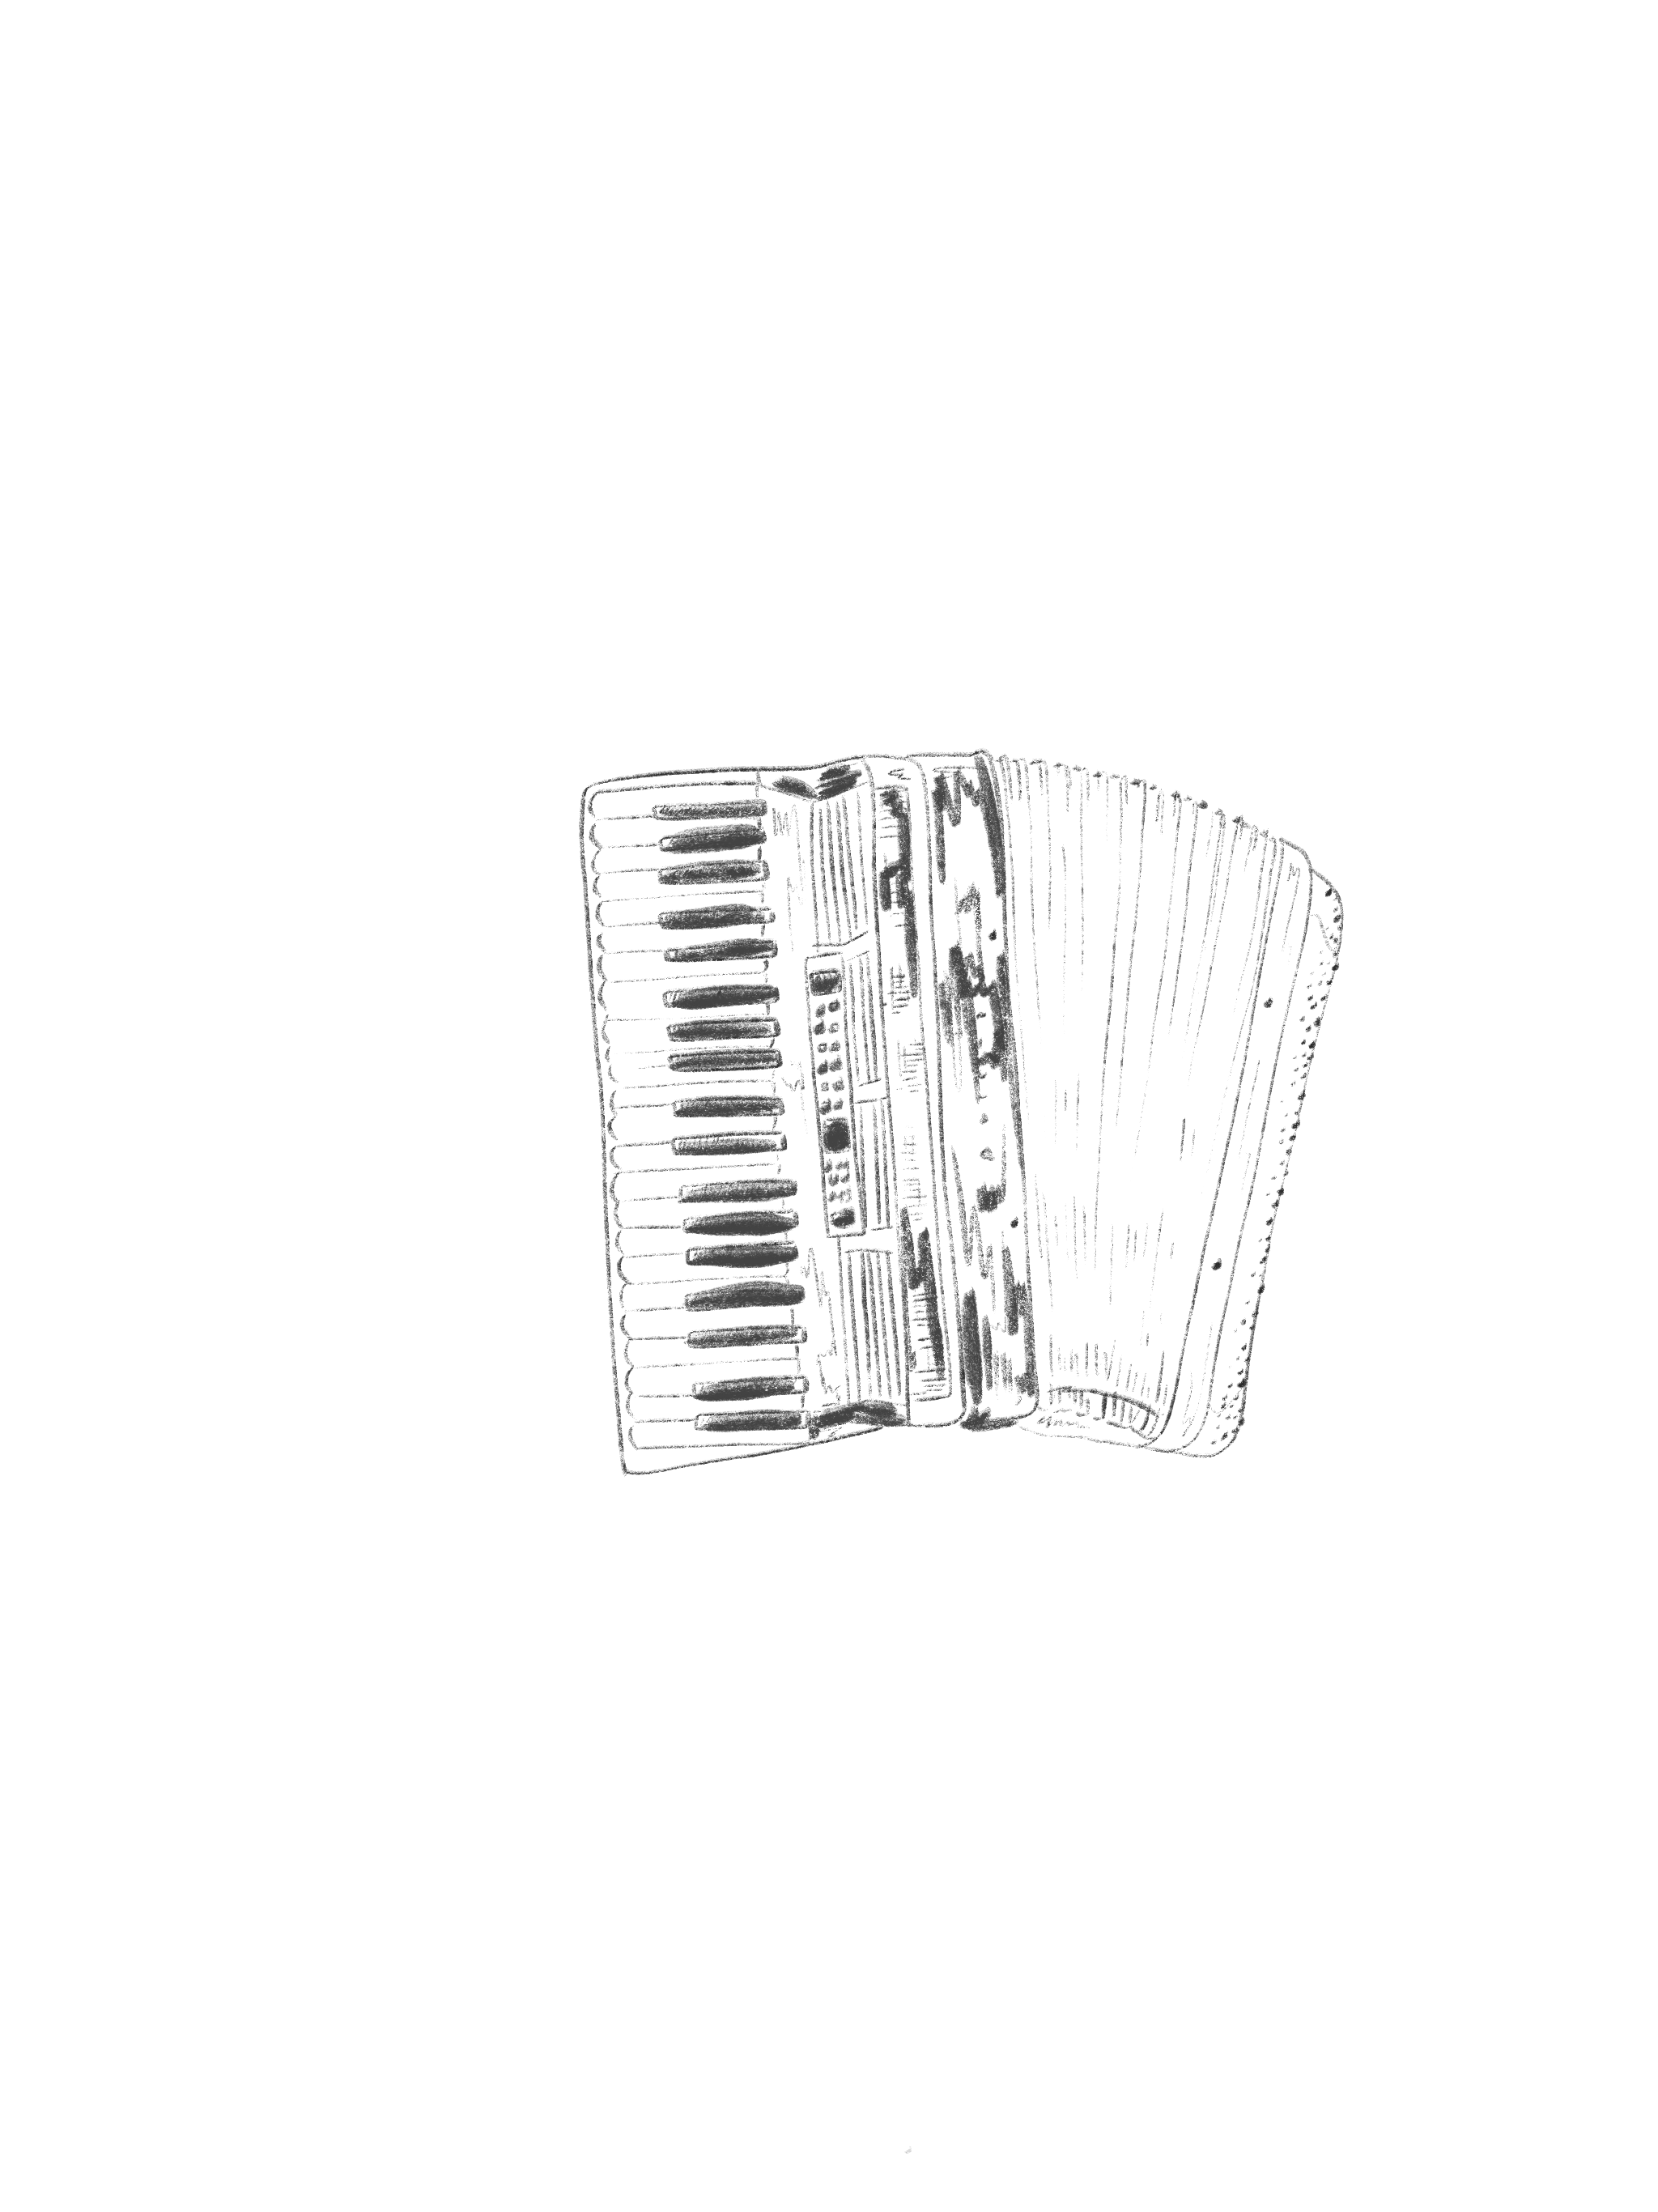 Updated AccordianBLACK.png